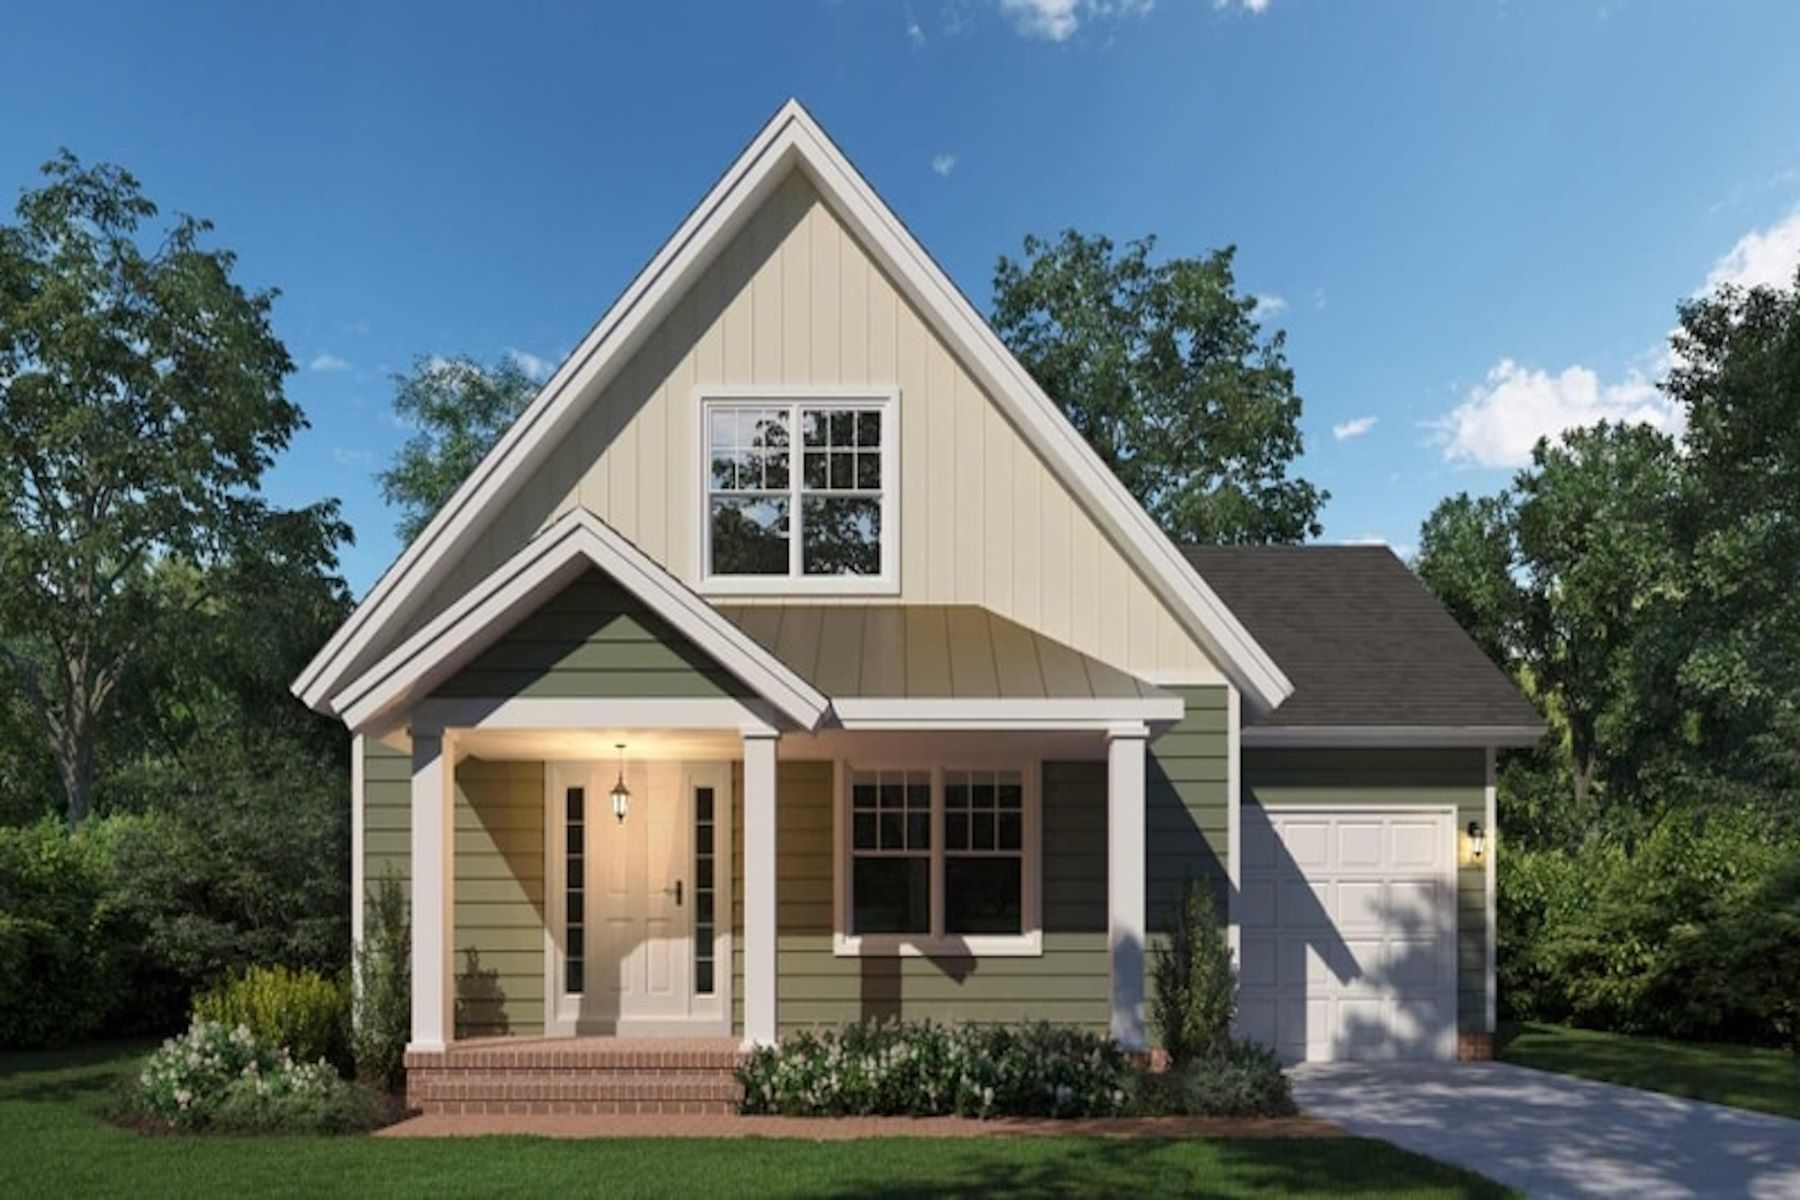 Single Family Homes για την Πώληση στο New Construction Coastal Bungalow in Tilghman on Chesapeake 5661 Trafalgar Circle, Tilghman, Μεριλαντ 21671 Ηνωμένες Πολιτείες